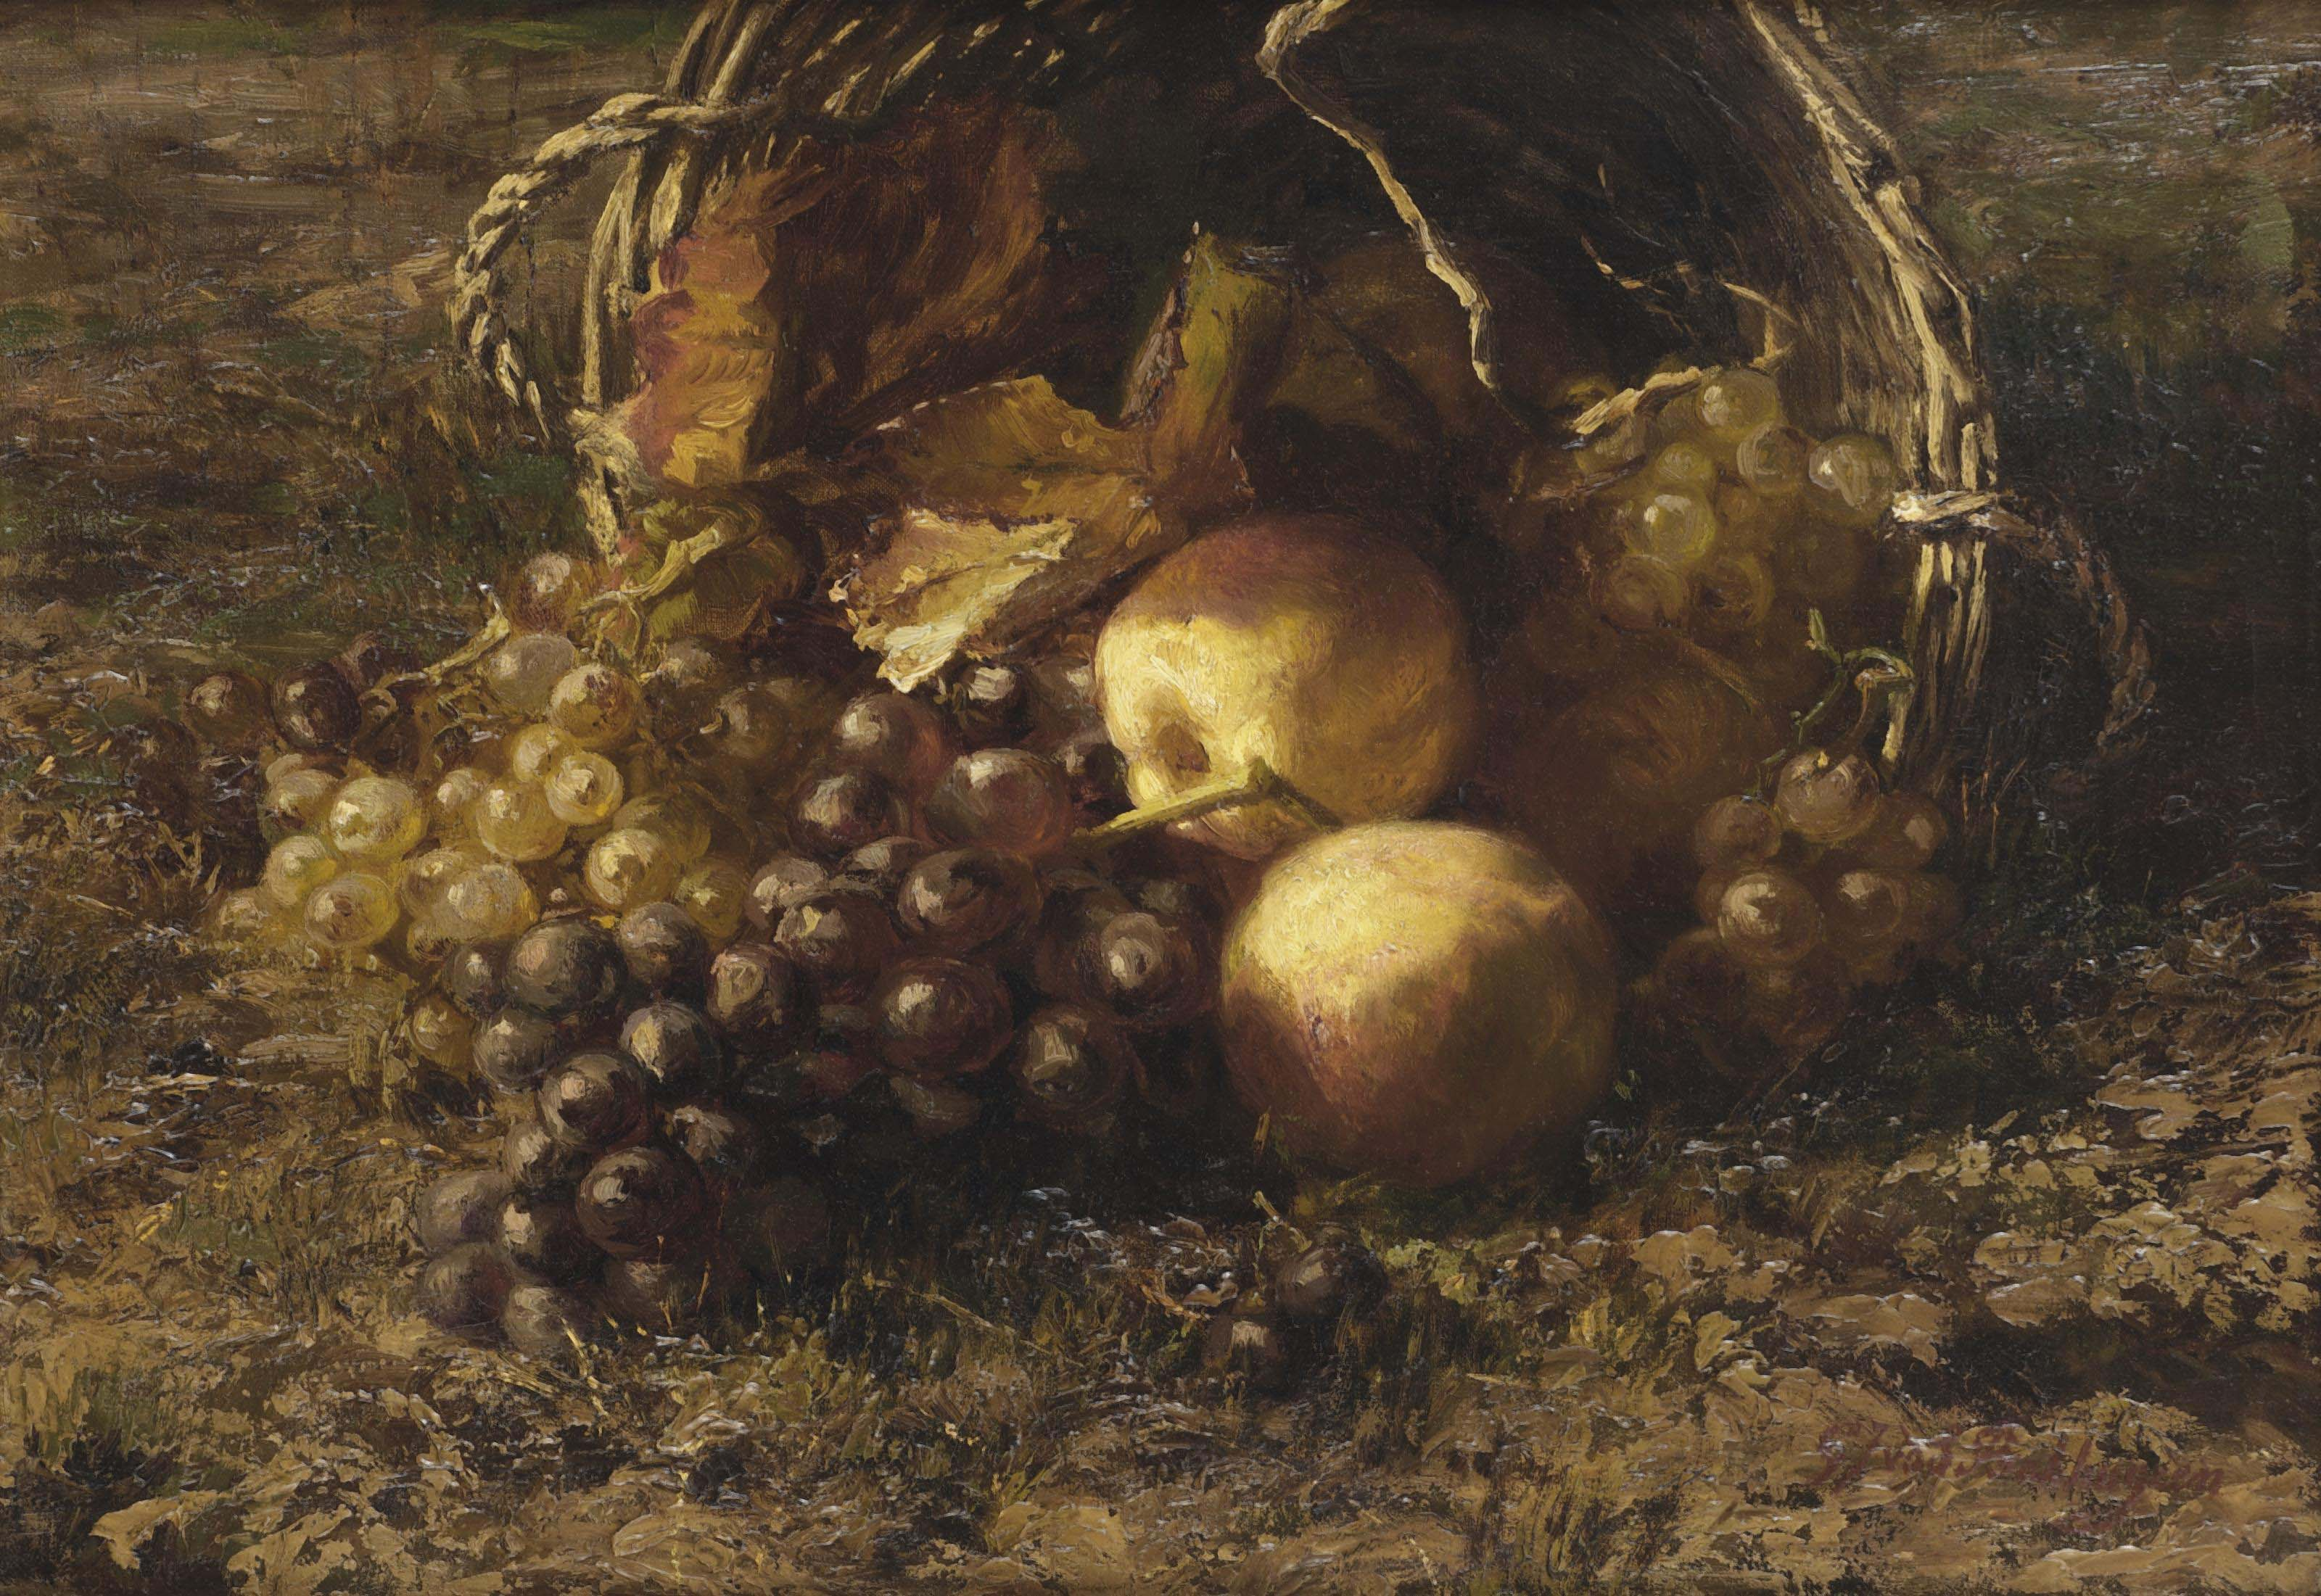 A wicker basket with grapes and apples on a forest floor